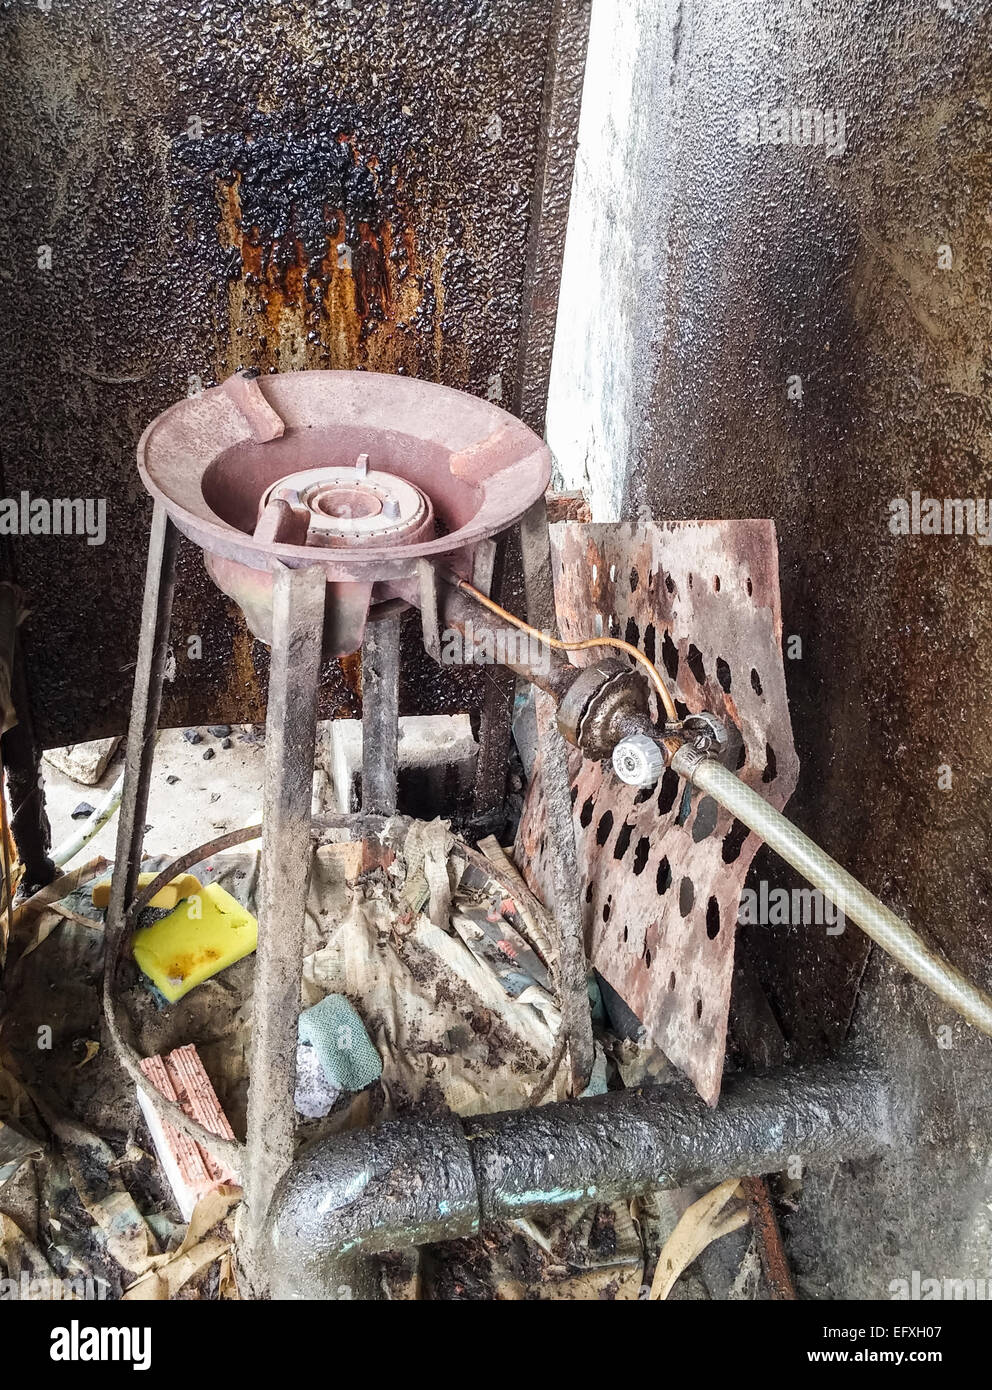 Old gas stove behind the restaurant. - Stock Image